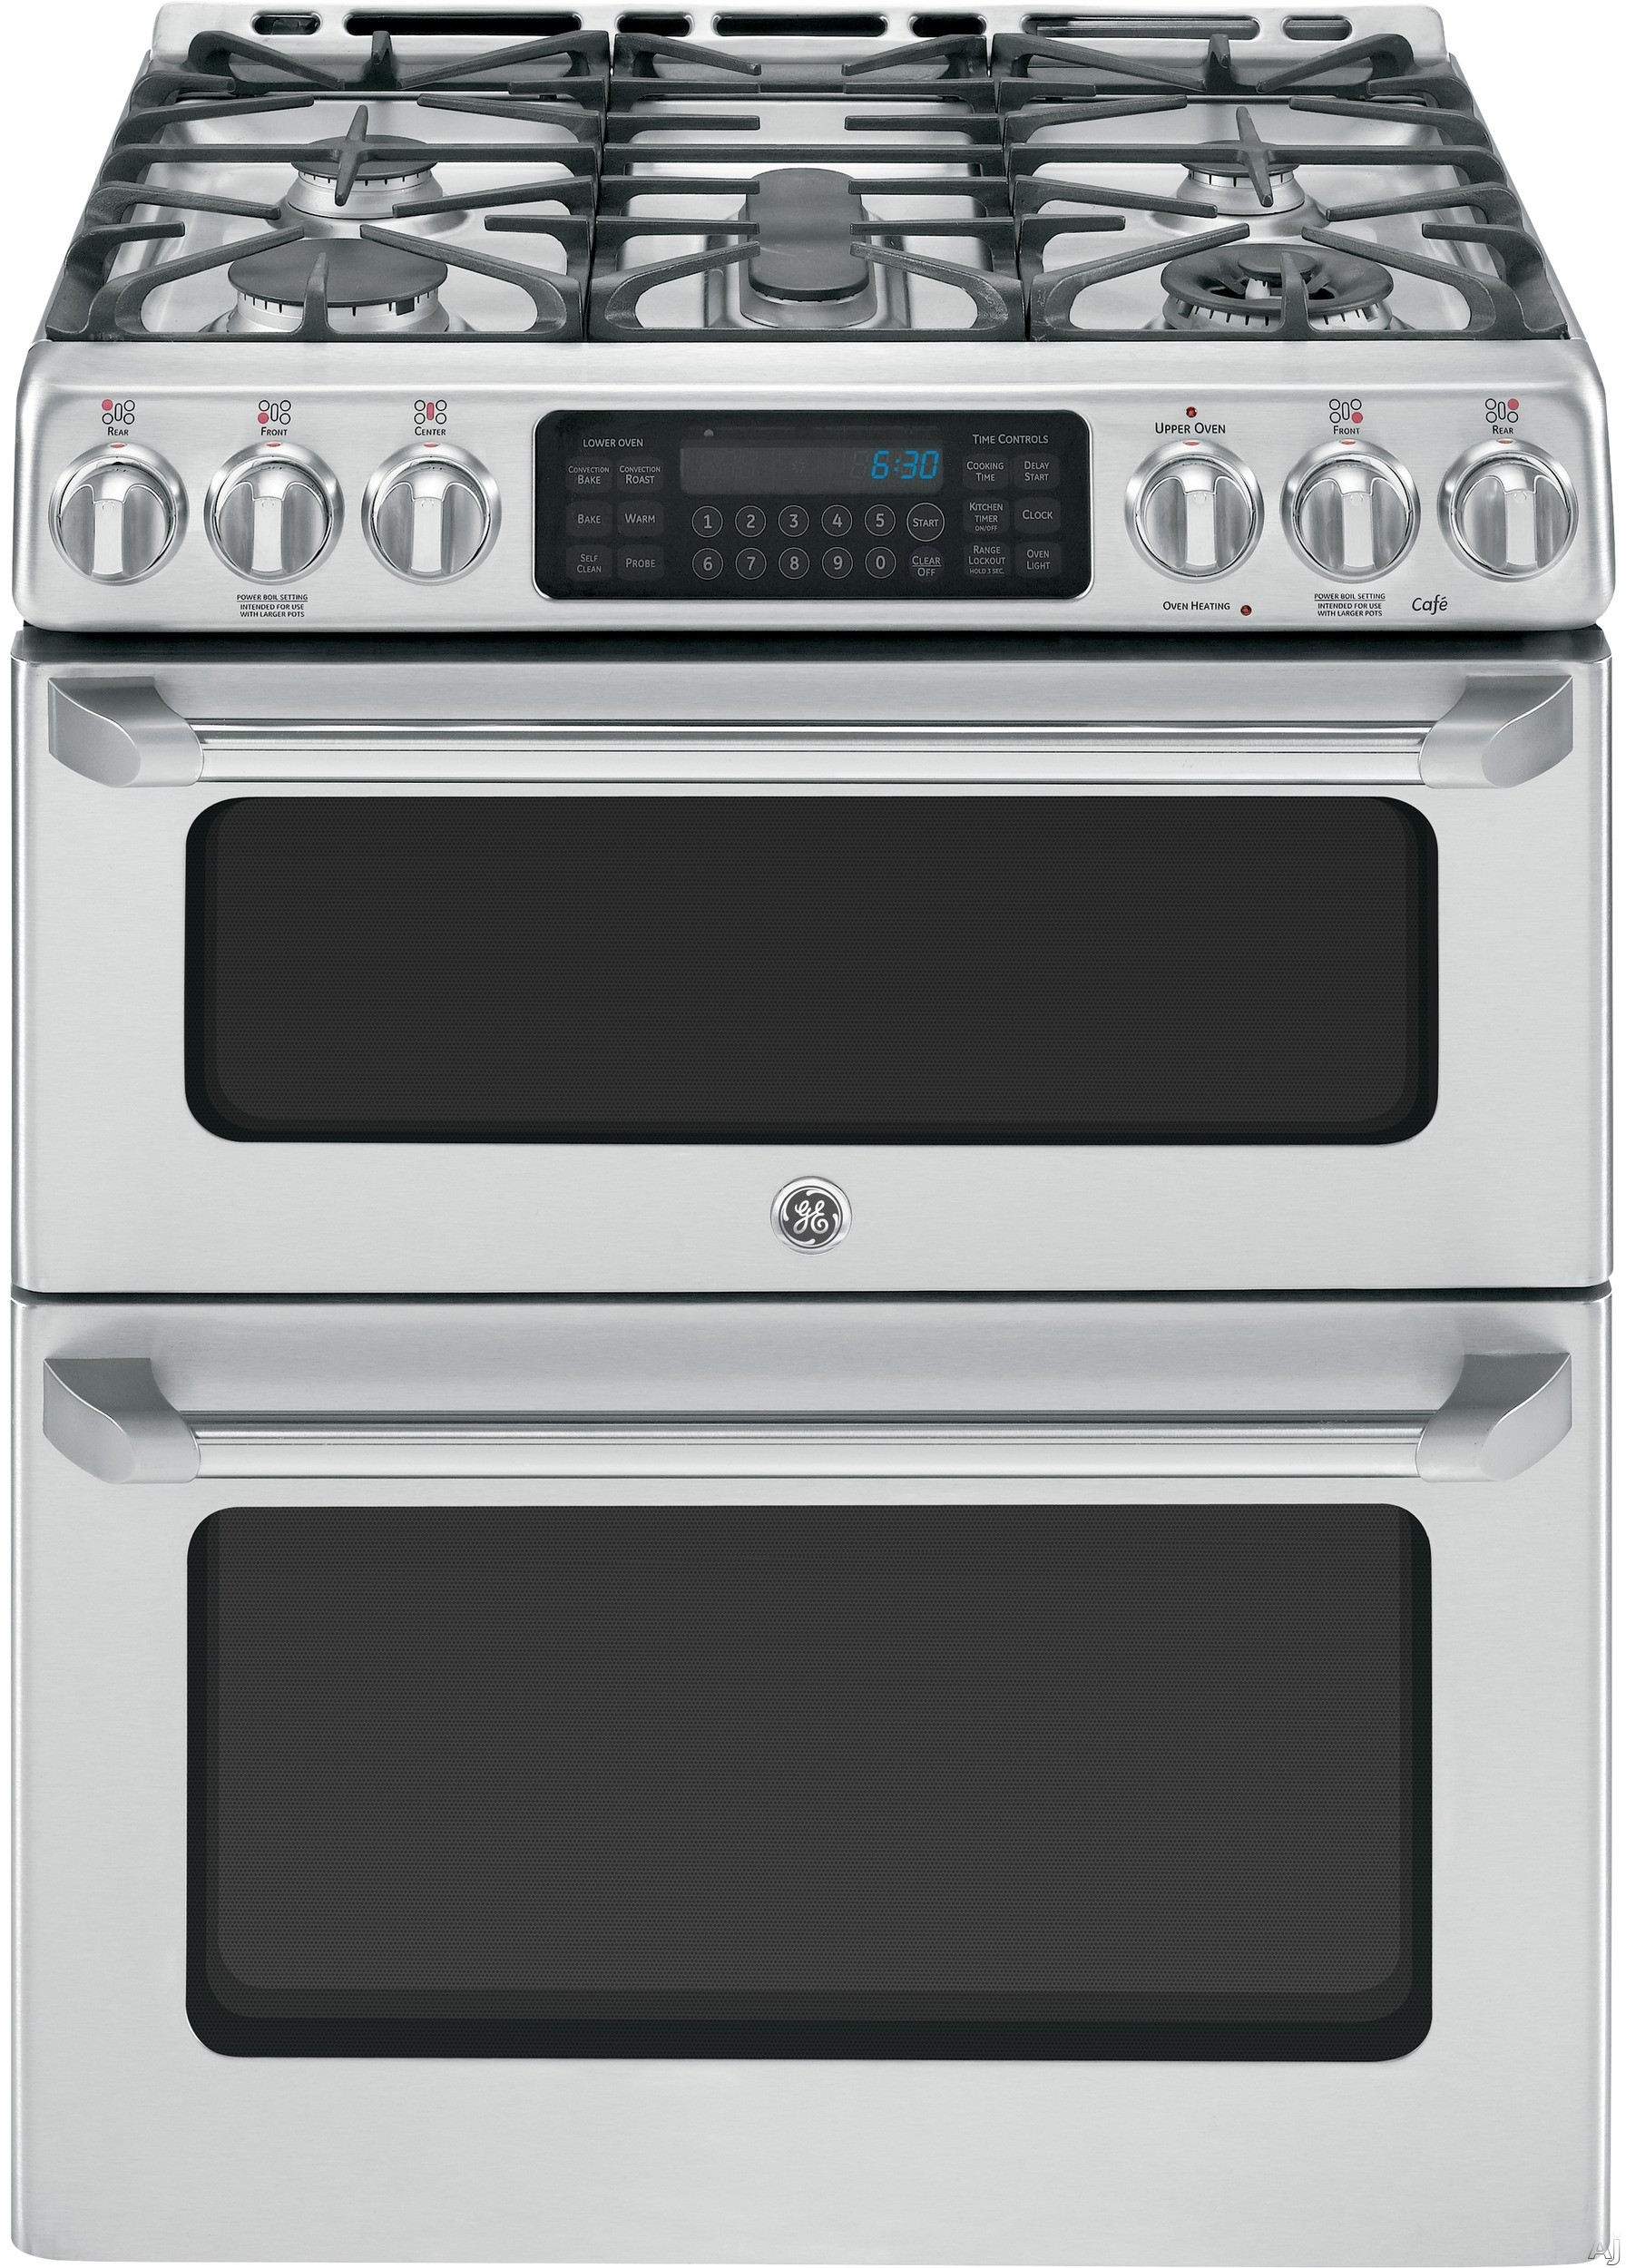 "GE Cafe Series CGS990SETSS 30"" Freestanding Gas Range with 5 Sealed Burners, 20,000 BTU Tri-Ring Burner, Precise Simmer Burner, 6.7 cu. ft. Convection Double Oven, Self-Clean and Griddle Accessory"